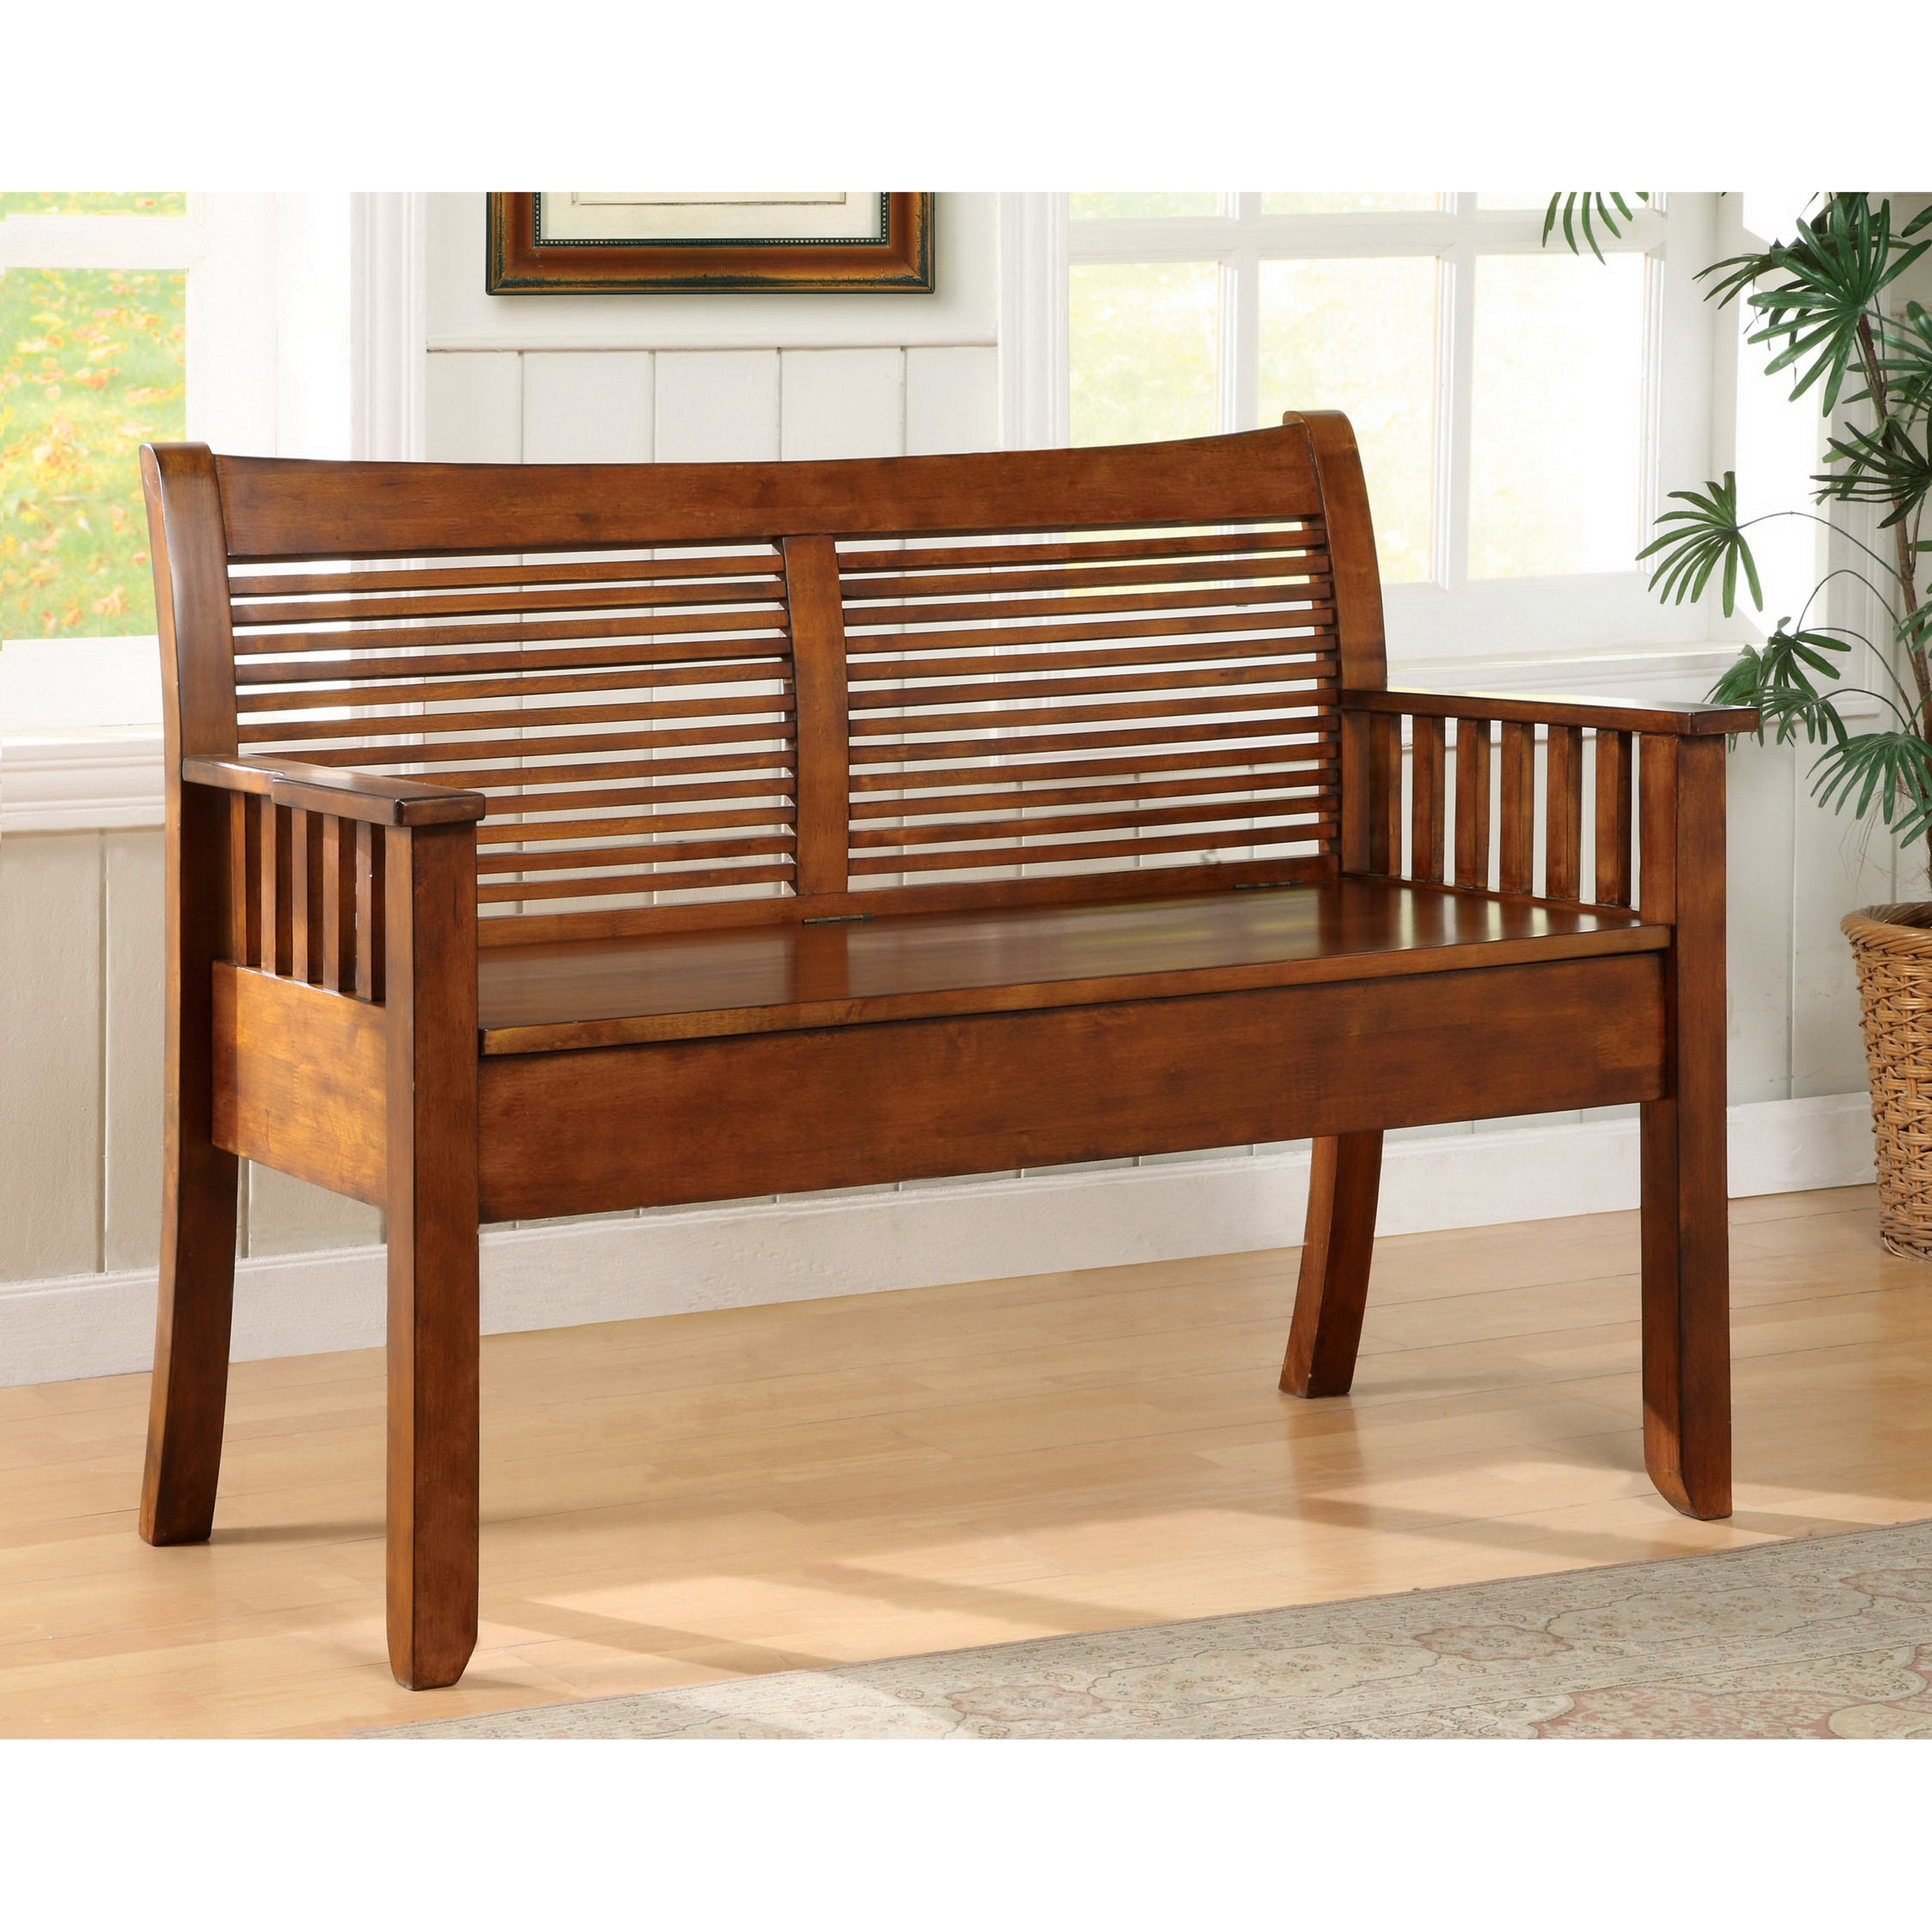 Shop Furniture Of America Solid Wood Storage Bench   Free Shipping Today    Overstock.com   4734272